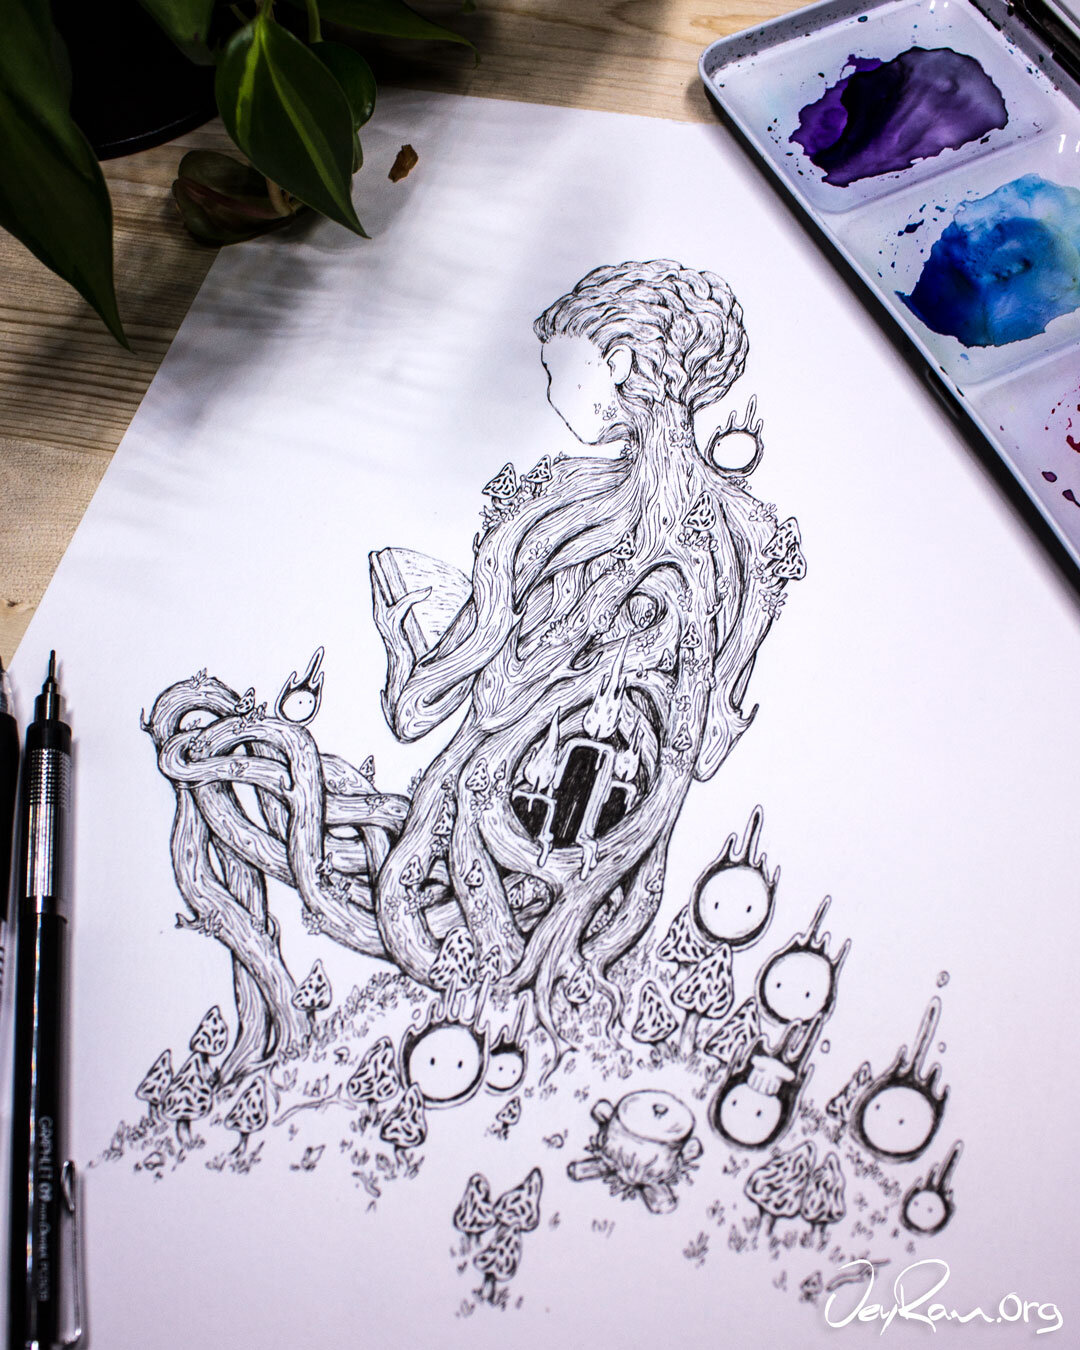 Morchella Wizard Ink Drawing :  Ballpoint Pen Art by JeyRam. I'm an artist from Toronto that specializes in simple and elegant ink drawing! #inktober #inkart #originalart #inktober2019